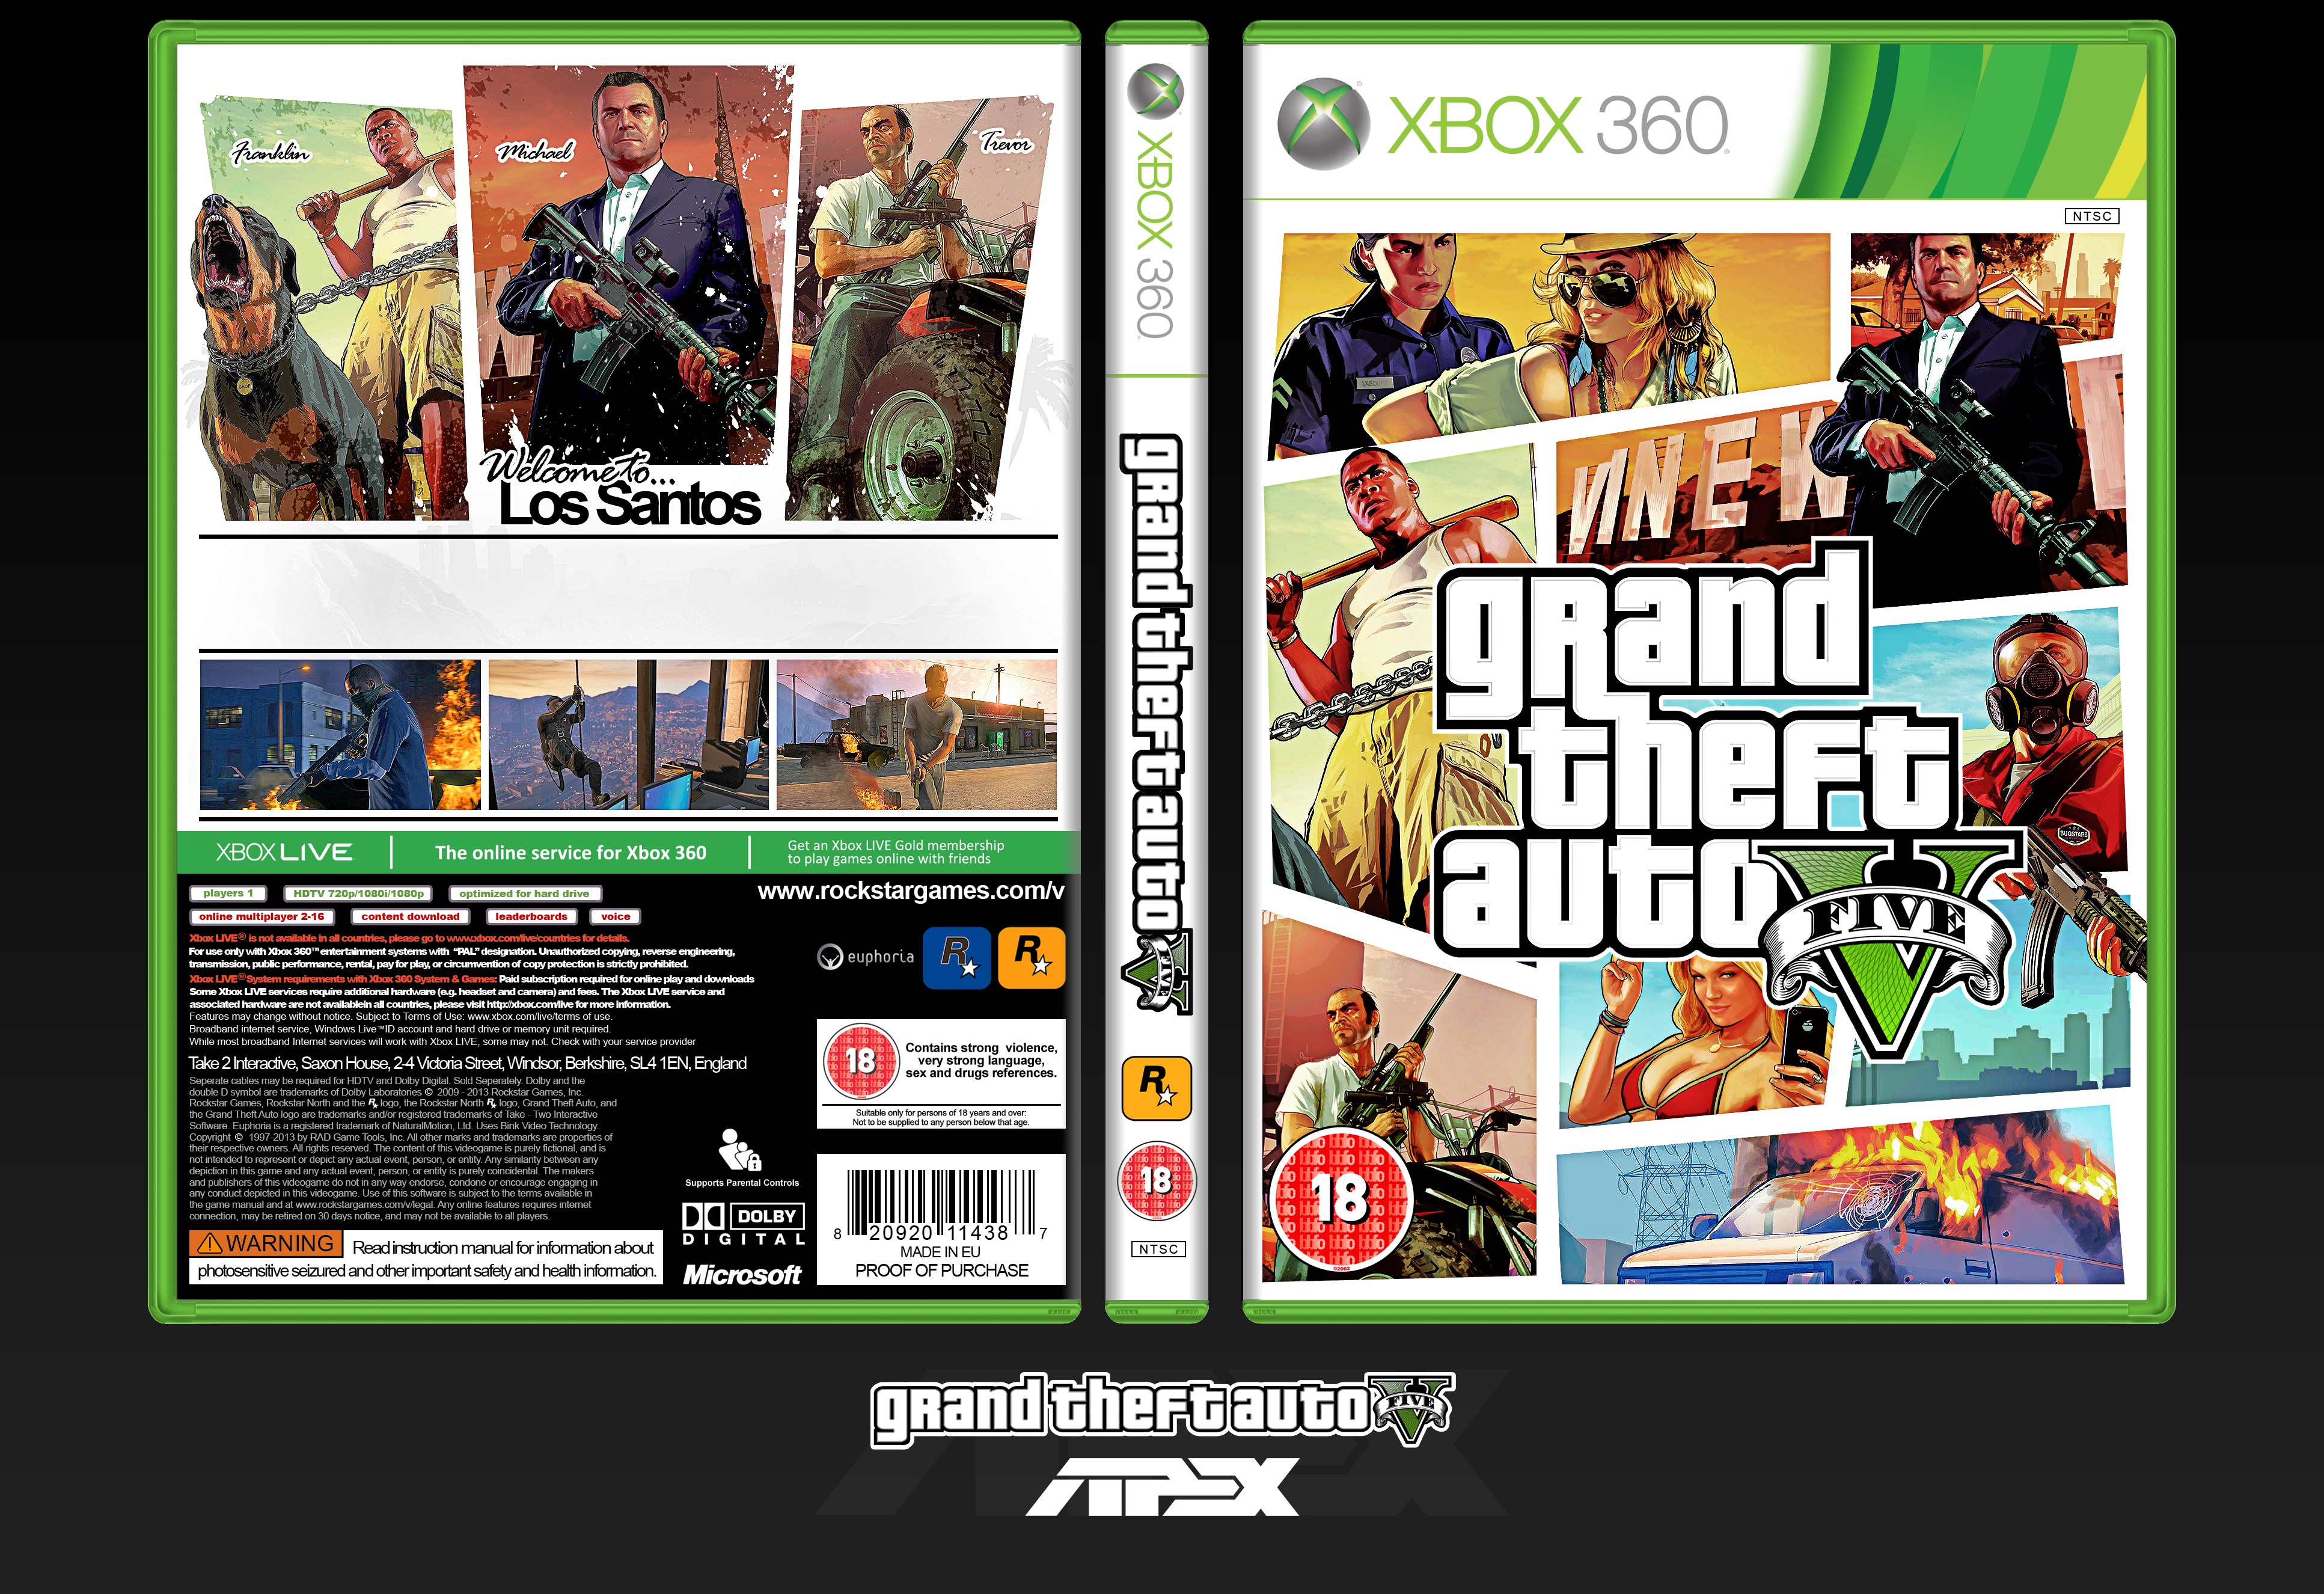 Viewing full size grand theft auto v box cover by xapexpred back